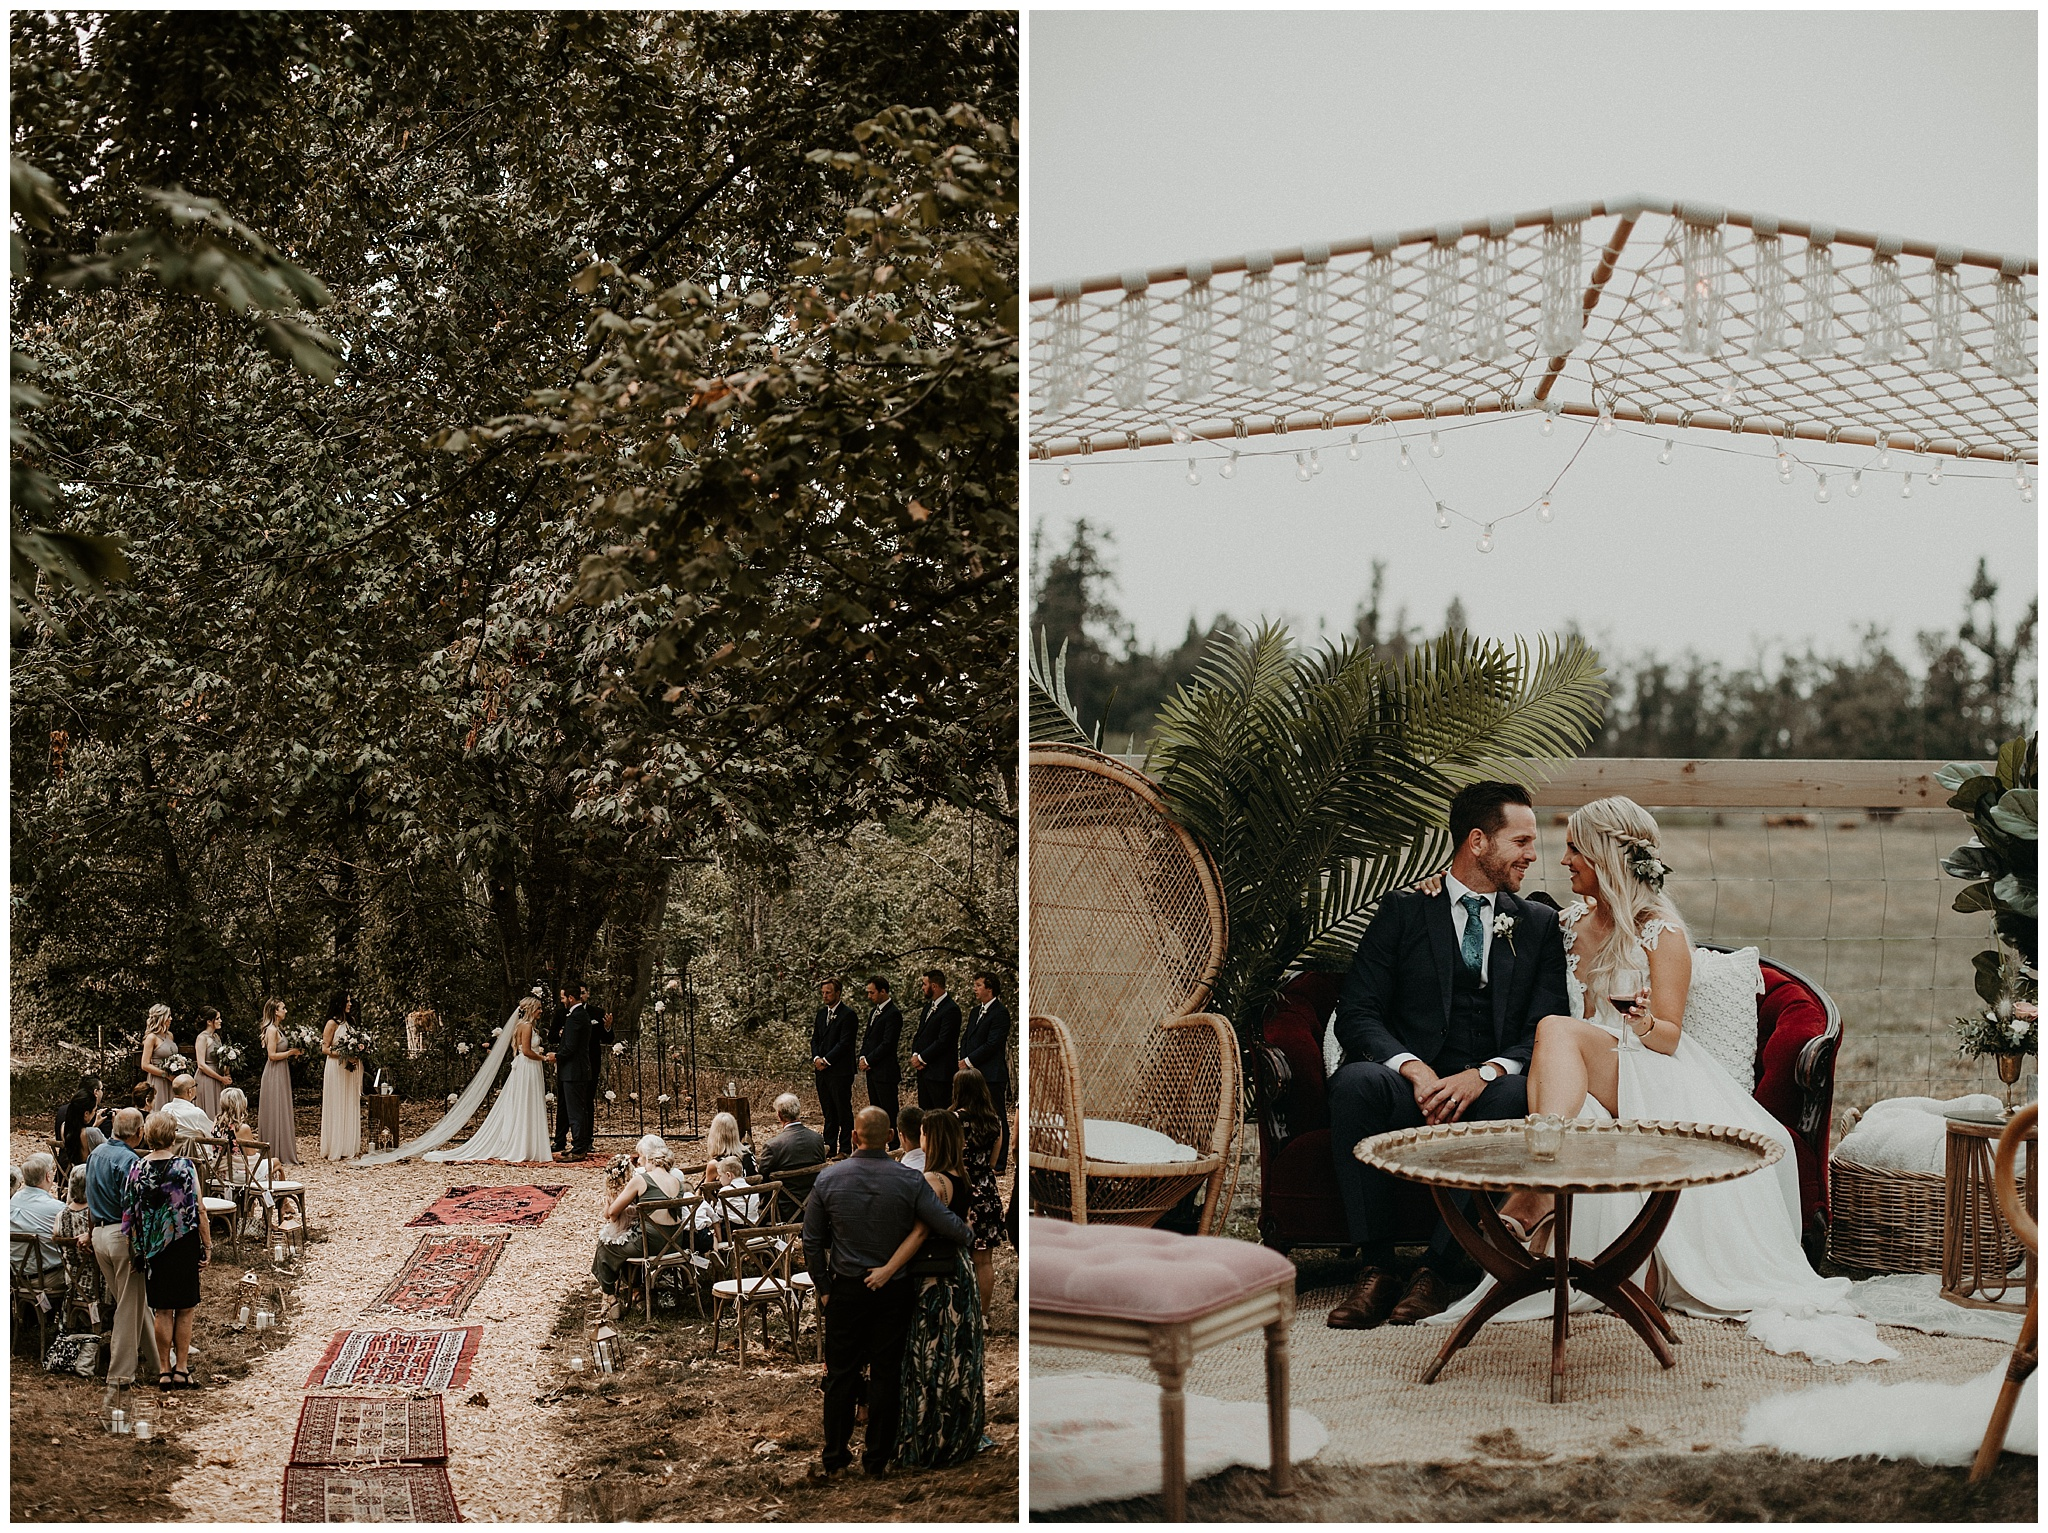 Set up of a bohemian backyard wedding in Langley, BC